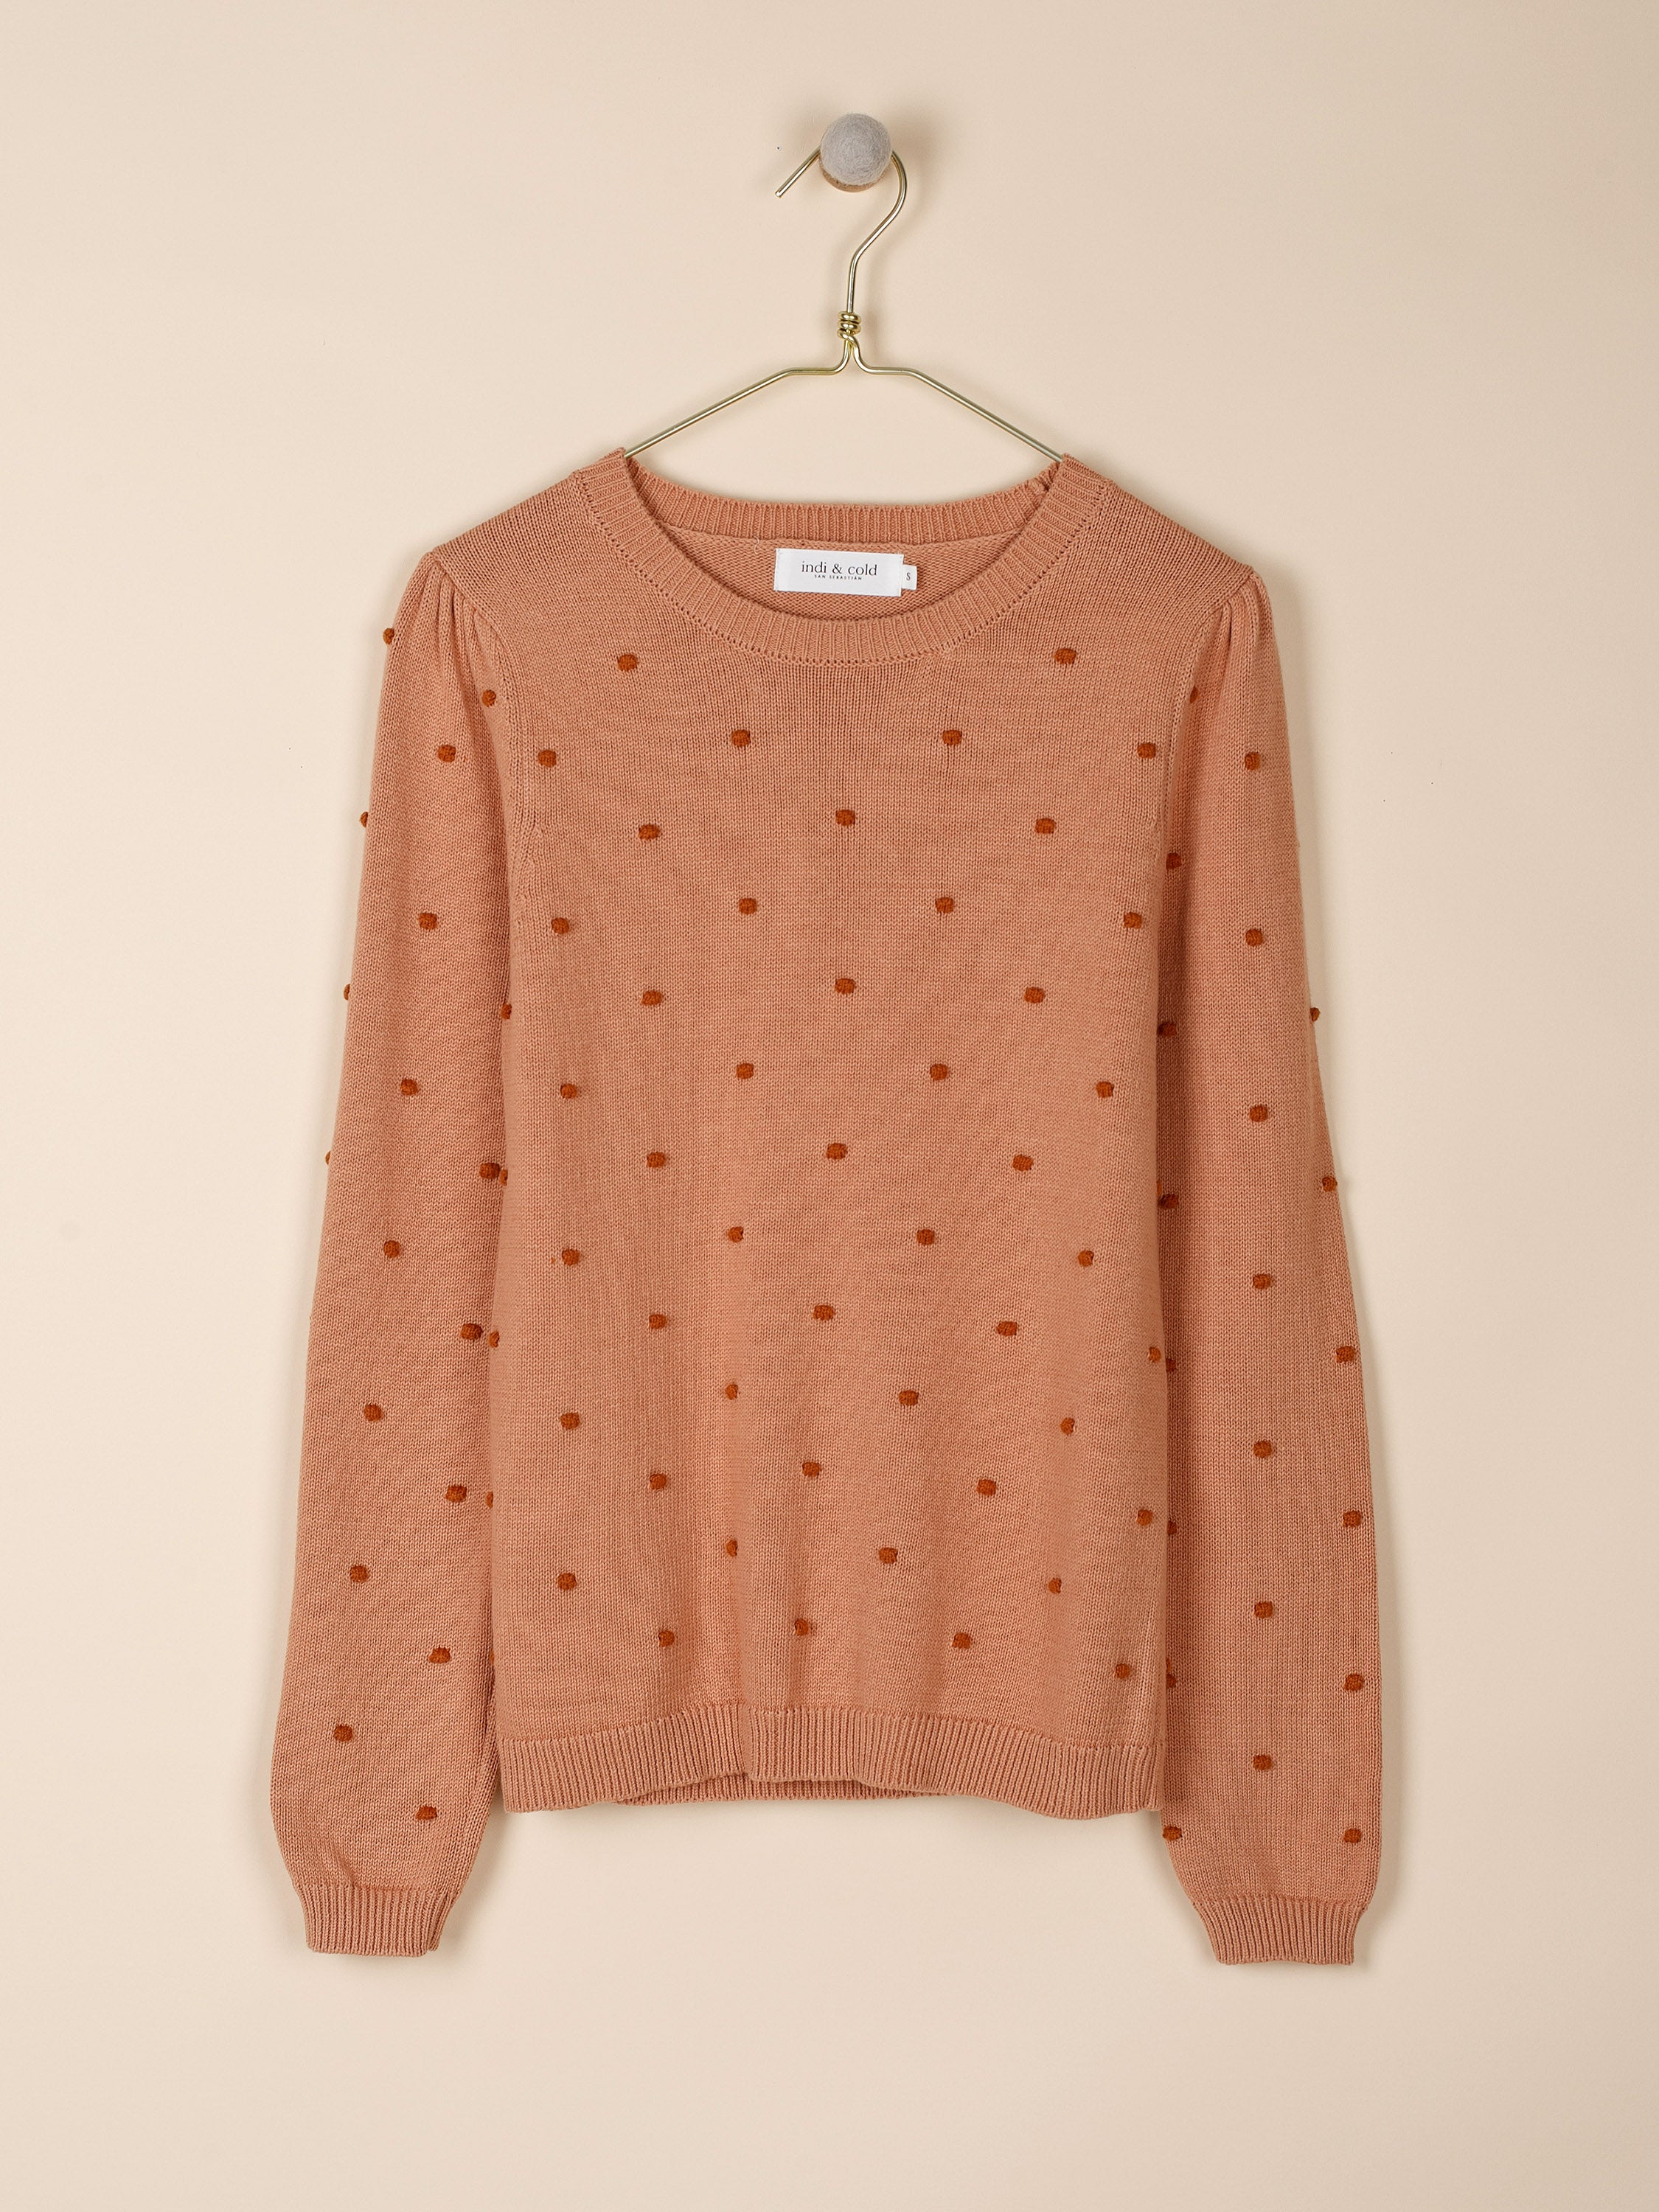 Indi & Cold Jersey Maquillaje Top